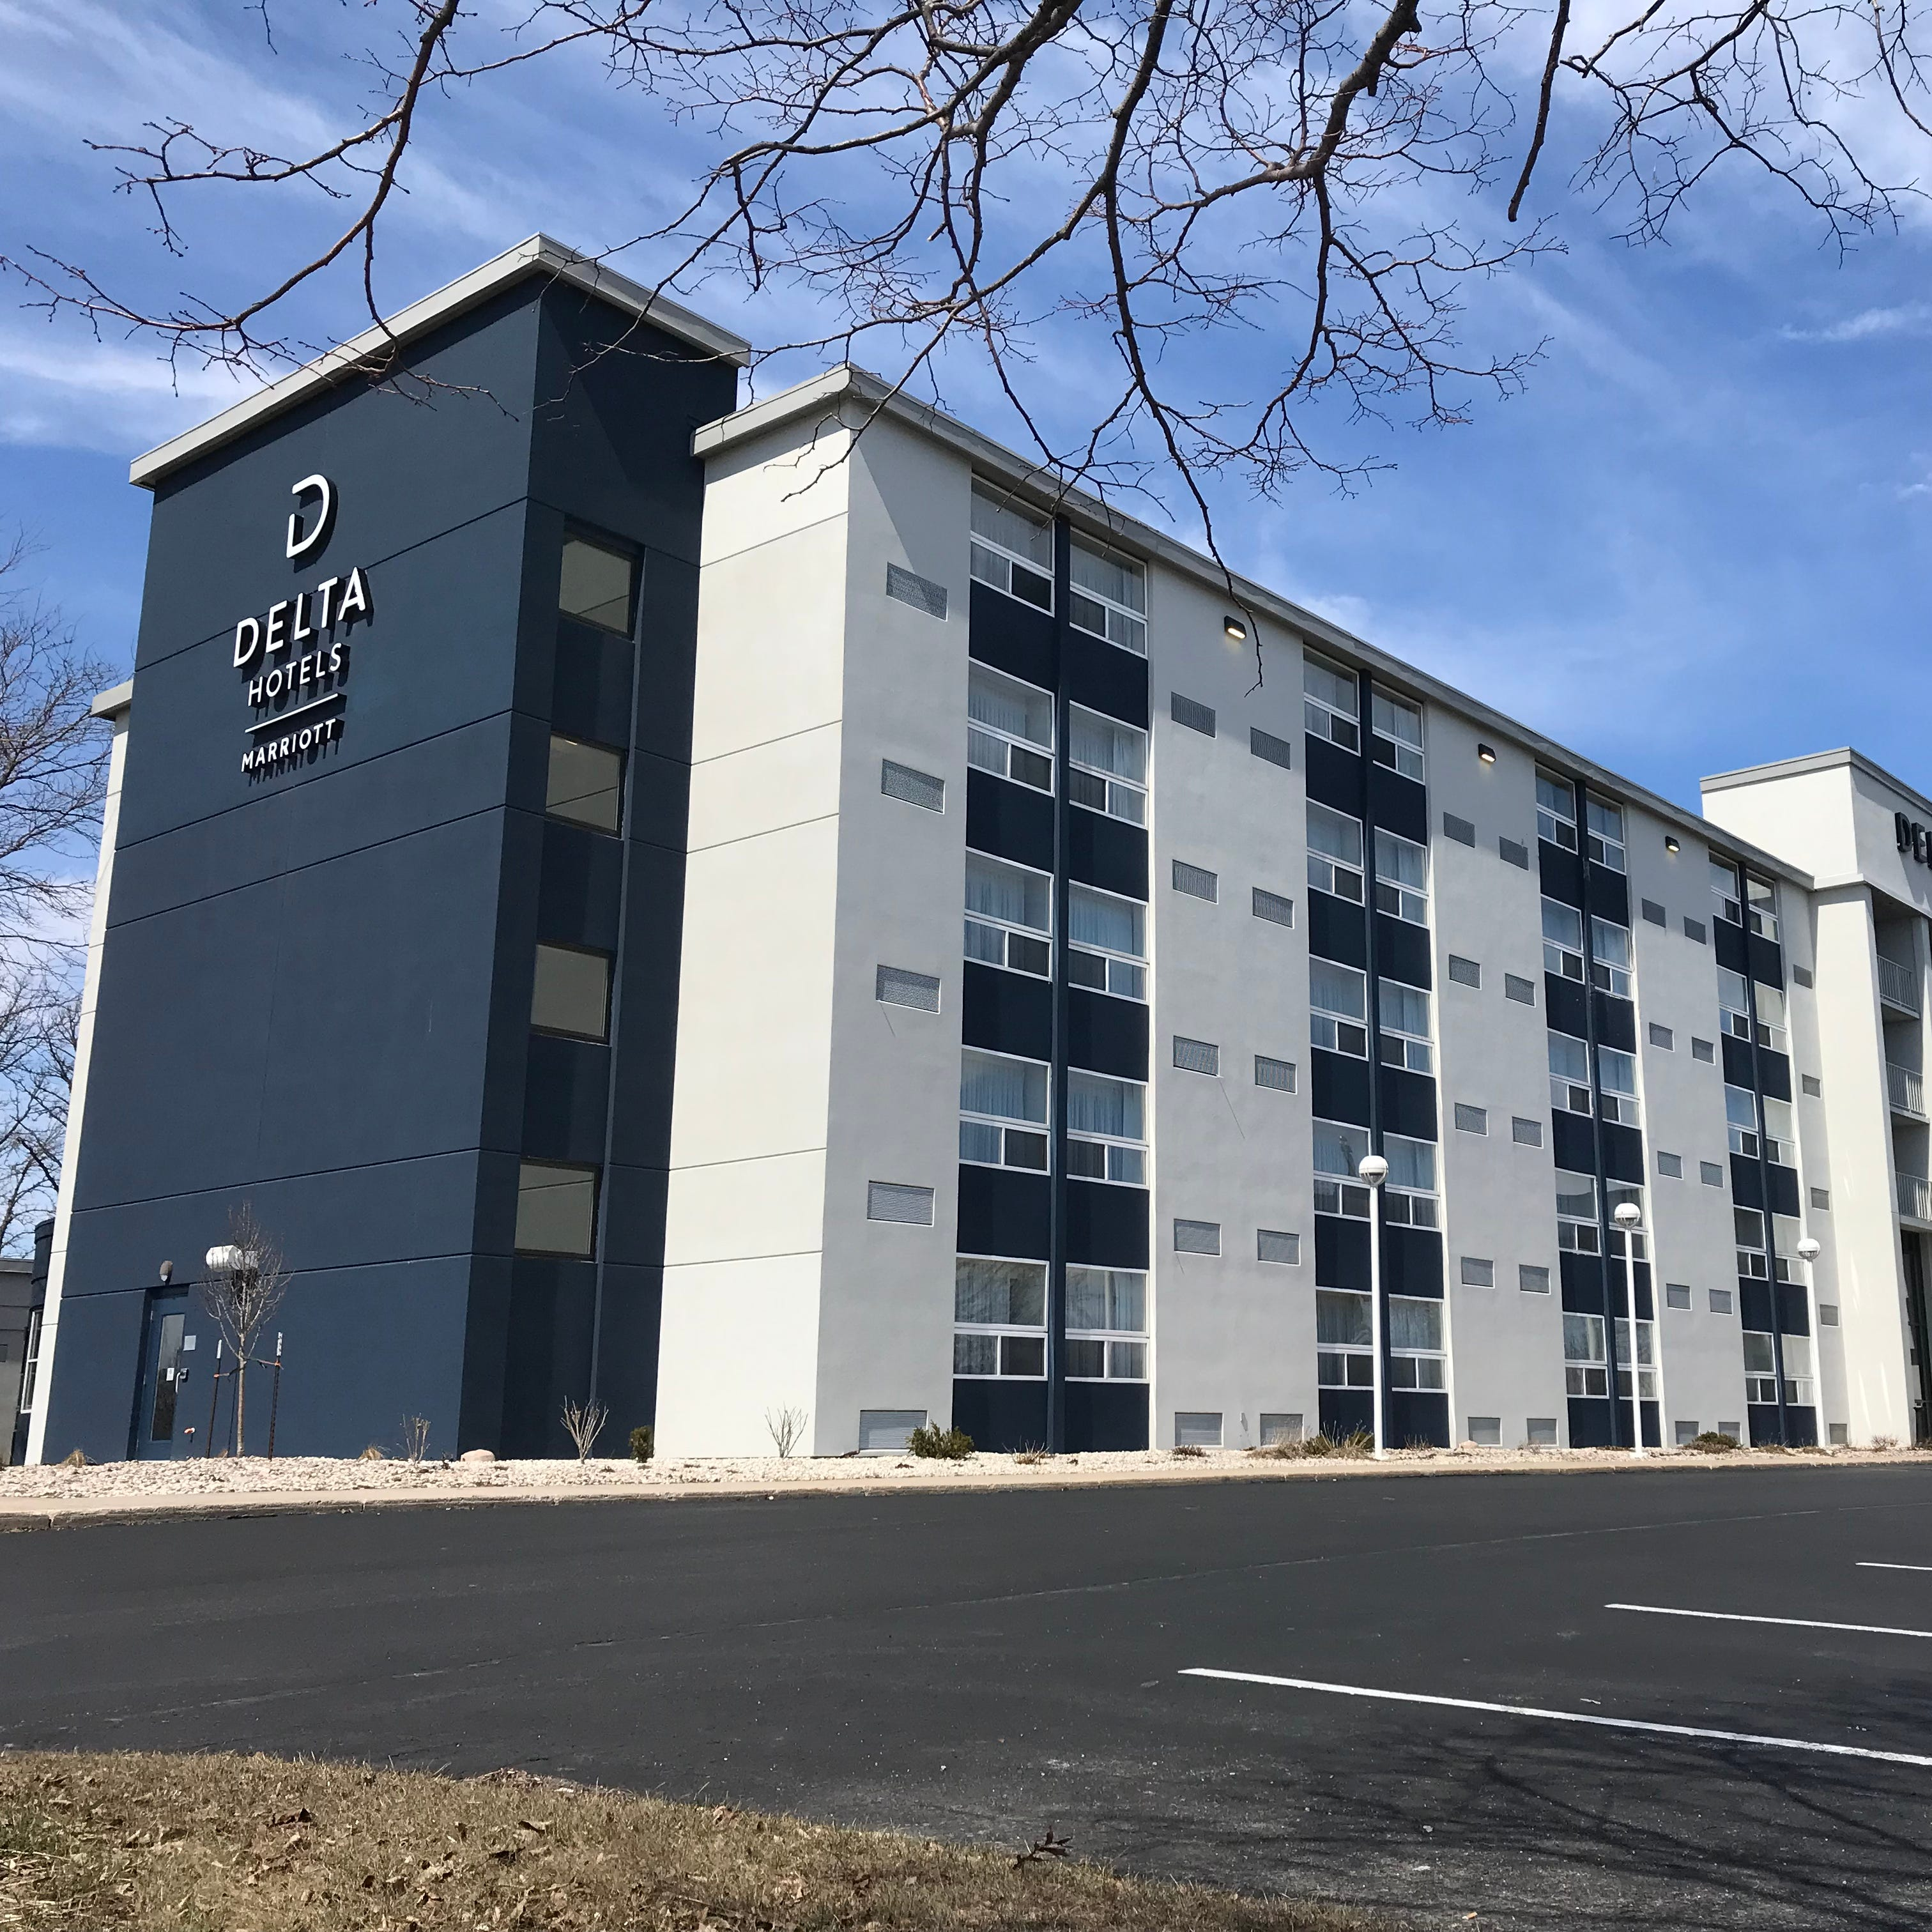 Streetwise: Public invited to check out Ashwaubenon hotel's $8.5 million remodel